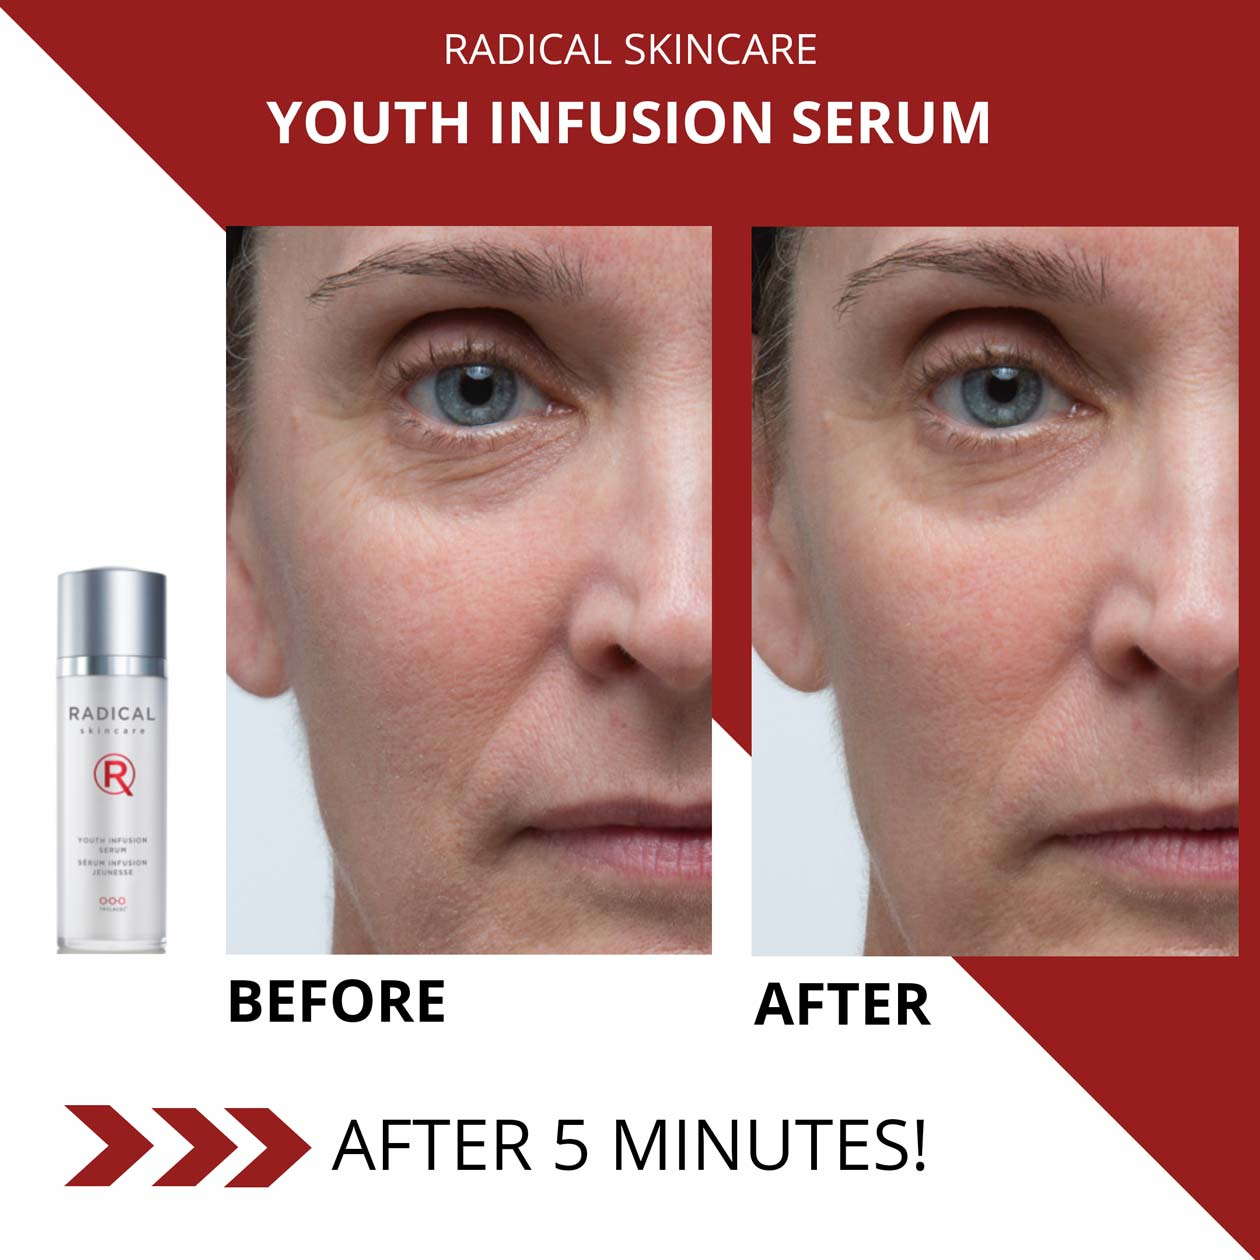 Youth Infusion Serum Before After 5 Minutes